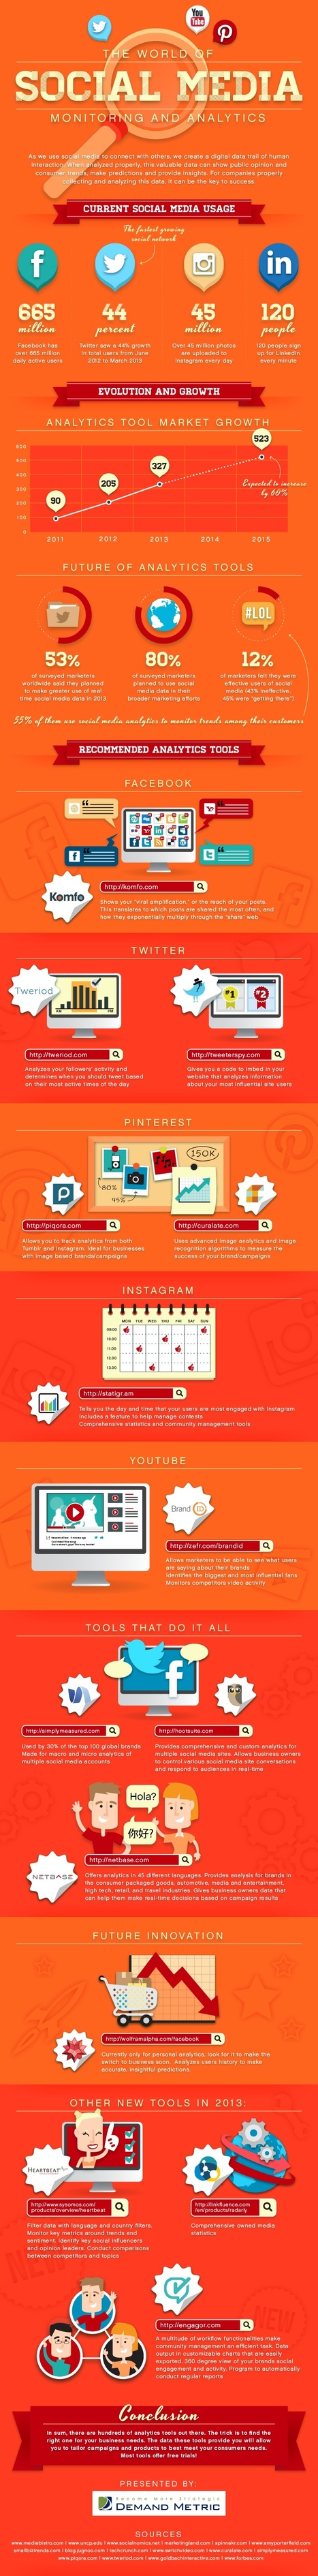 The World Of Social Media Monitoring And Analytics [INFOGRAPHIC] | Analytics | Scoop.it